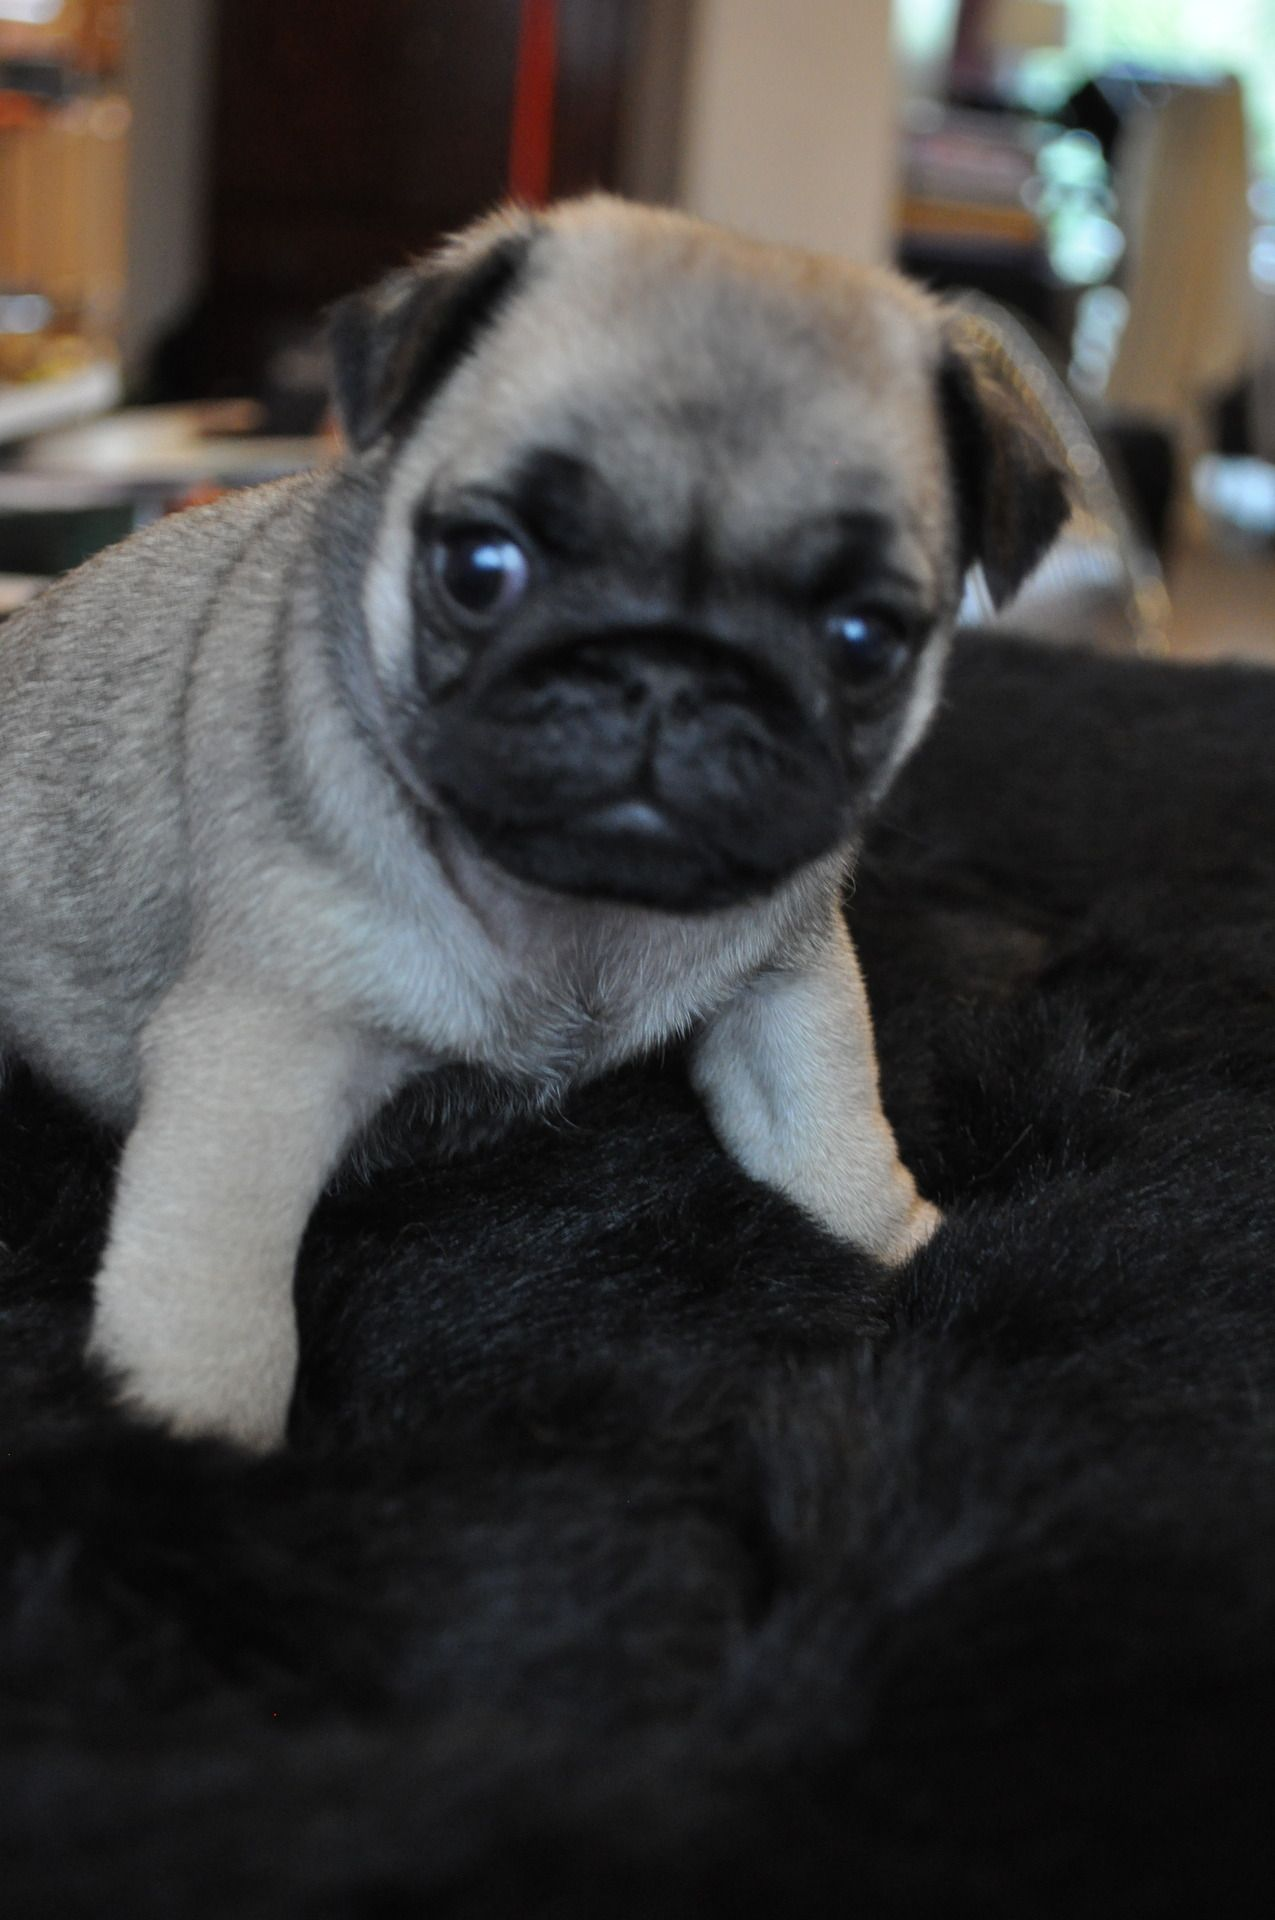 Cute Pug Puppy Loved By Teens At Age Of Adventure Nz Http Www